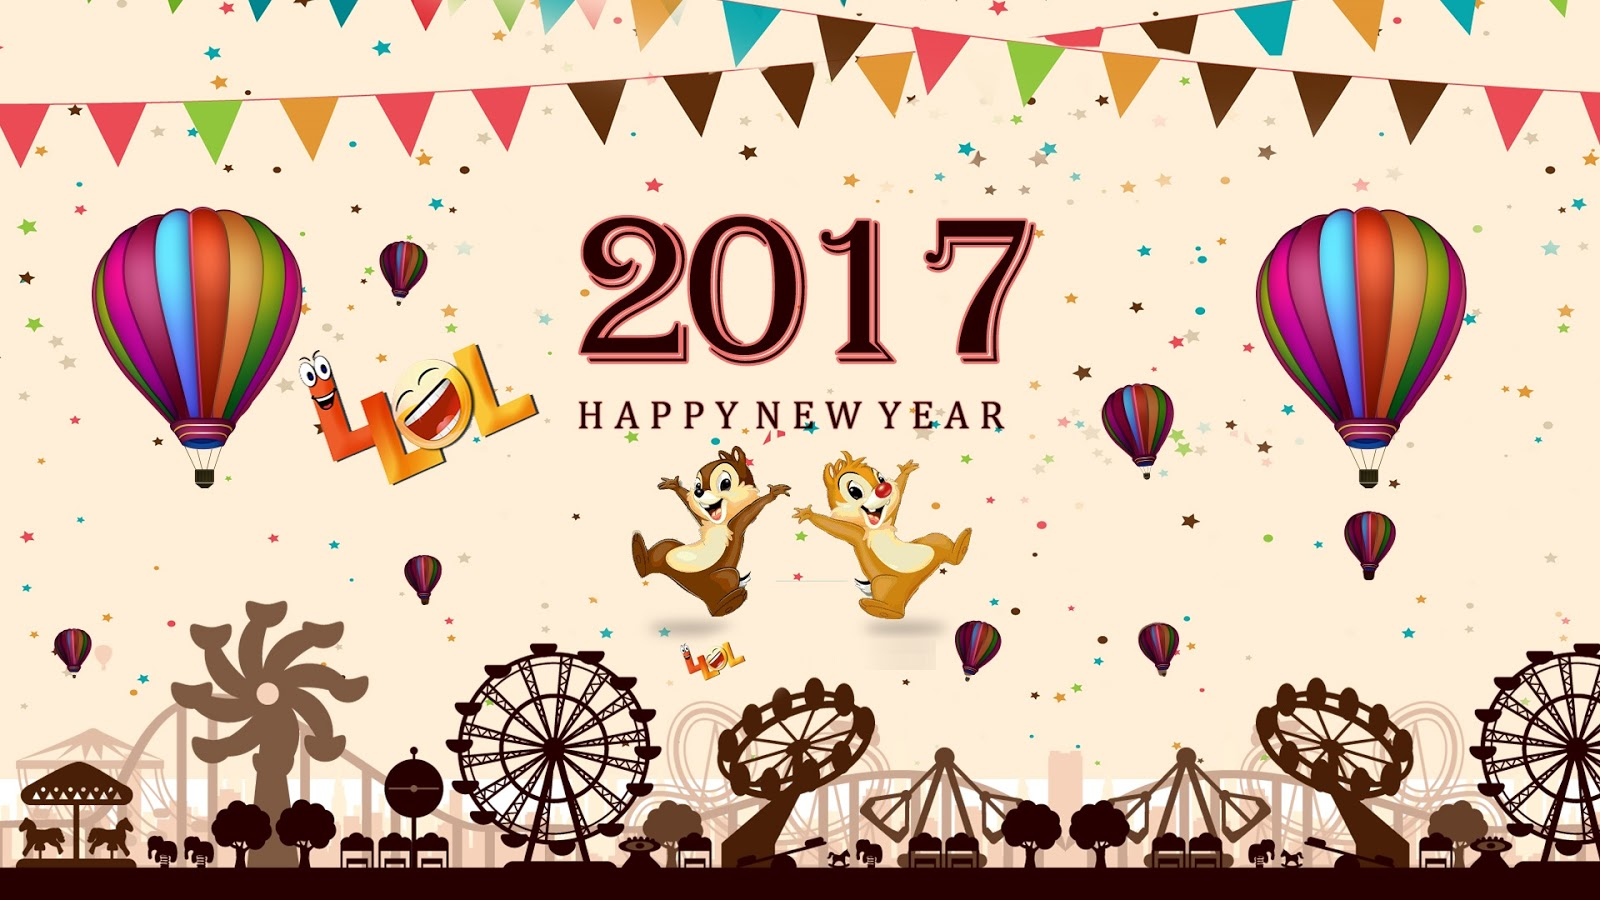 Happy New Year FB Profile Pictures 2017 | New Year 2017 Cover Photos, Timeline, Status and Wishes